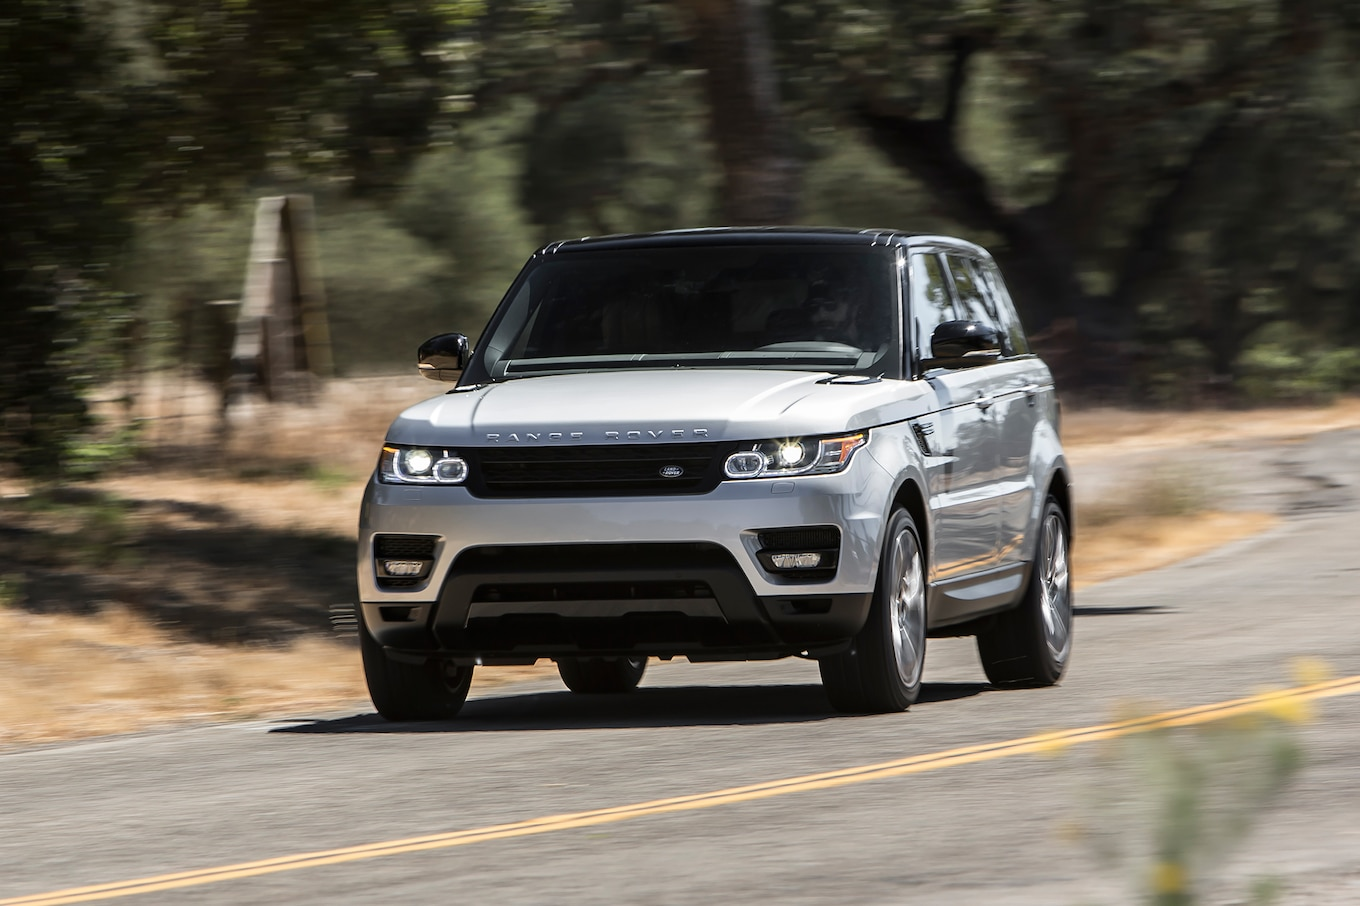 100 ideas Range Rover Redesign on freecoloingxmastwnload